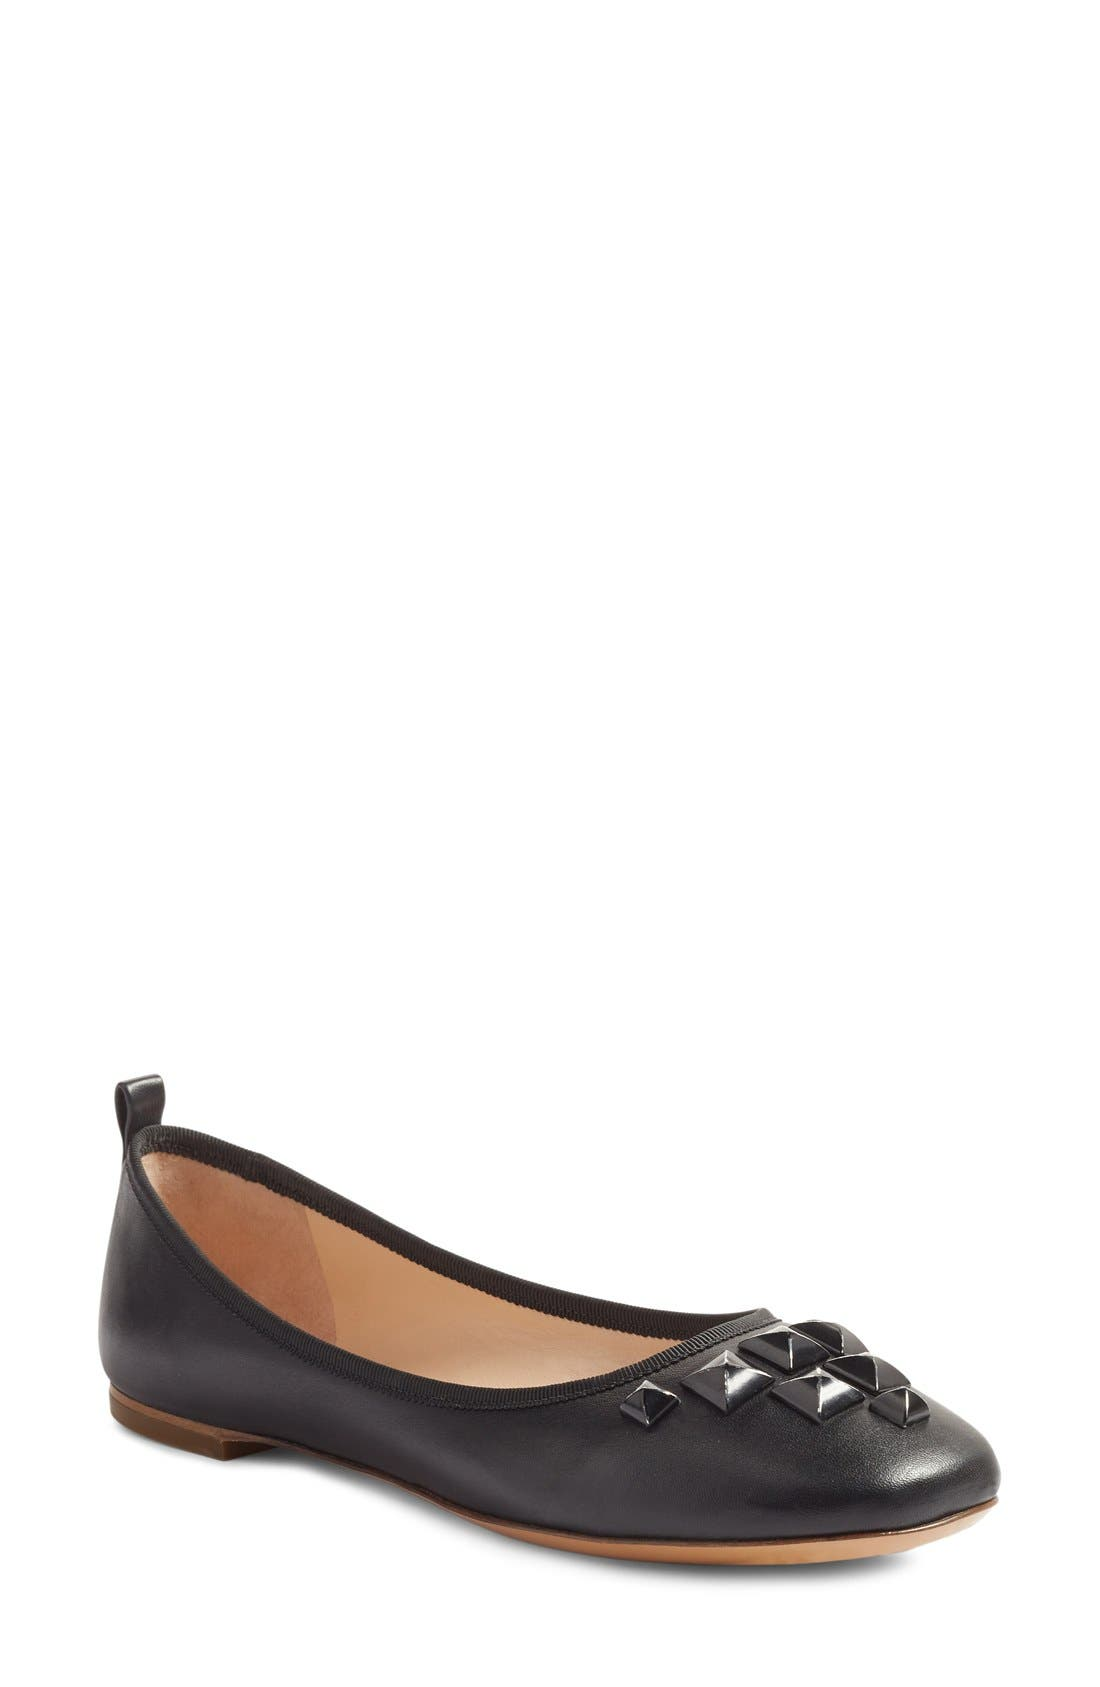 Alternate Image 1 Selected - MARC JACOBS Cleo Studded Ballet Flat (Women)